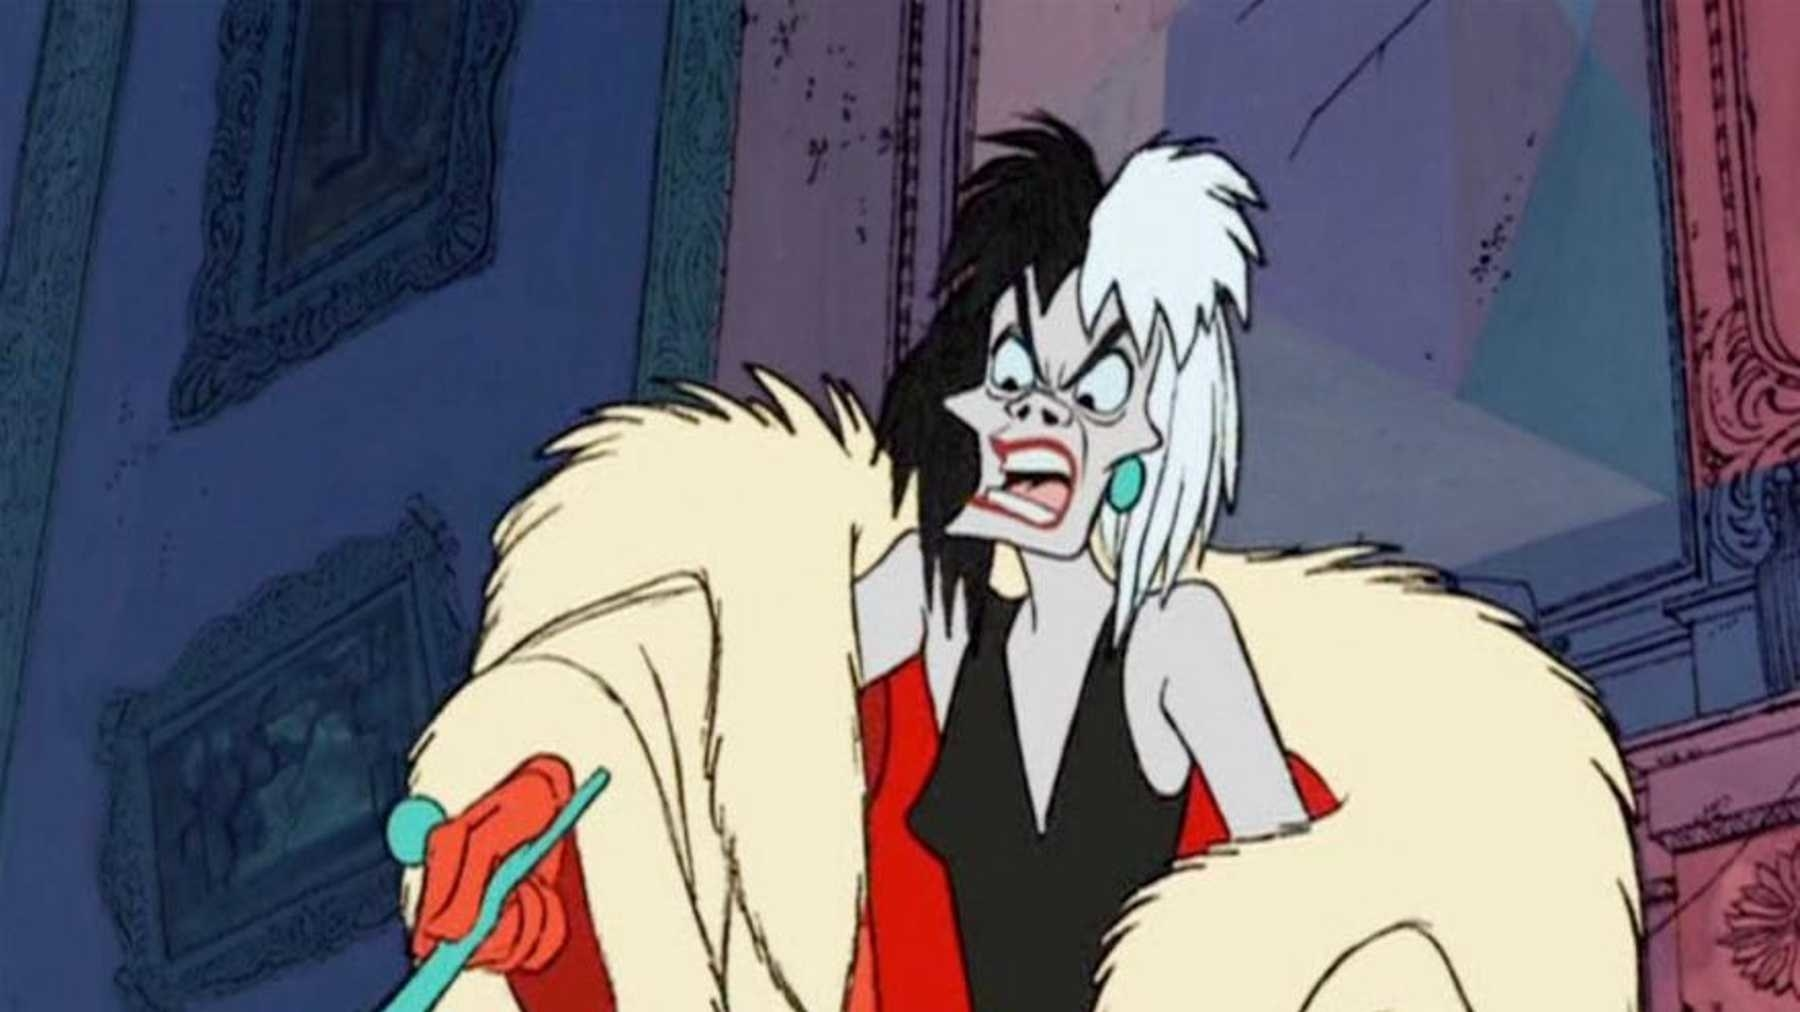 Cruella De Vill, a scrawny woman in a fur coat, points her cigarette holder at something offscreen